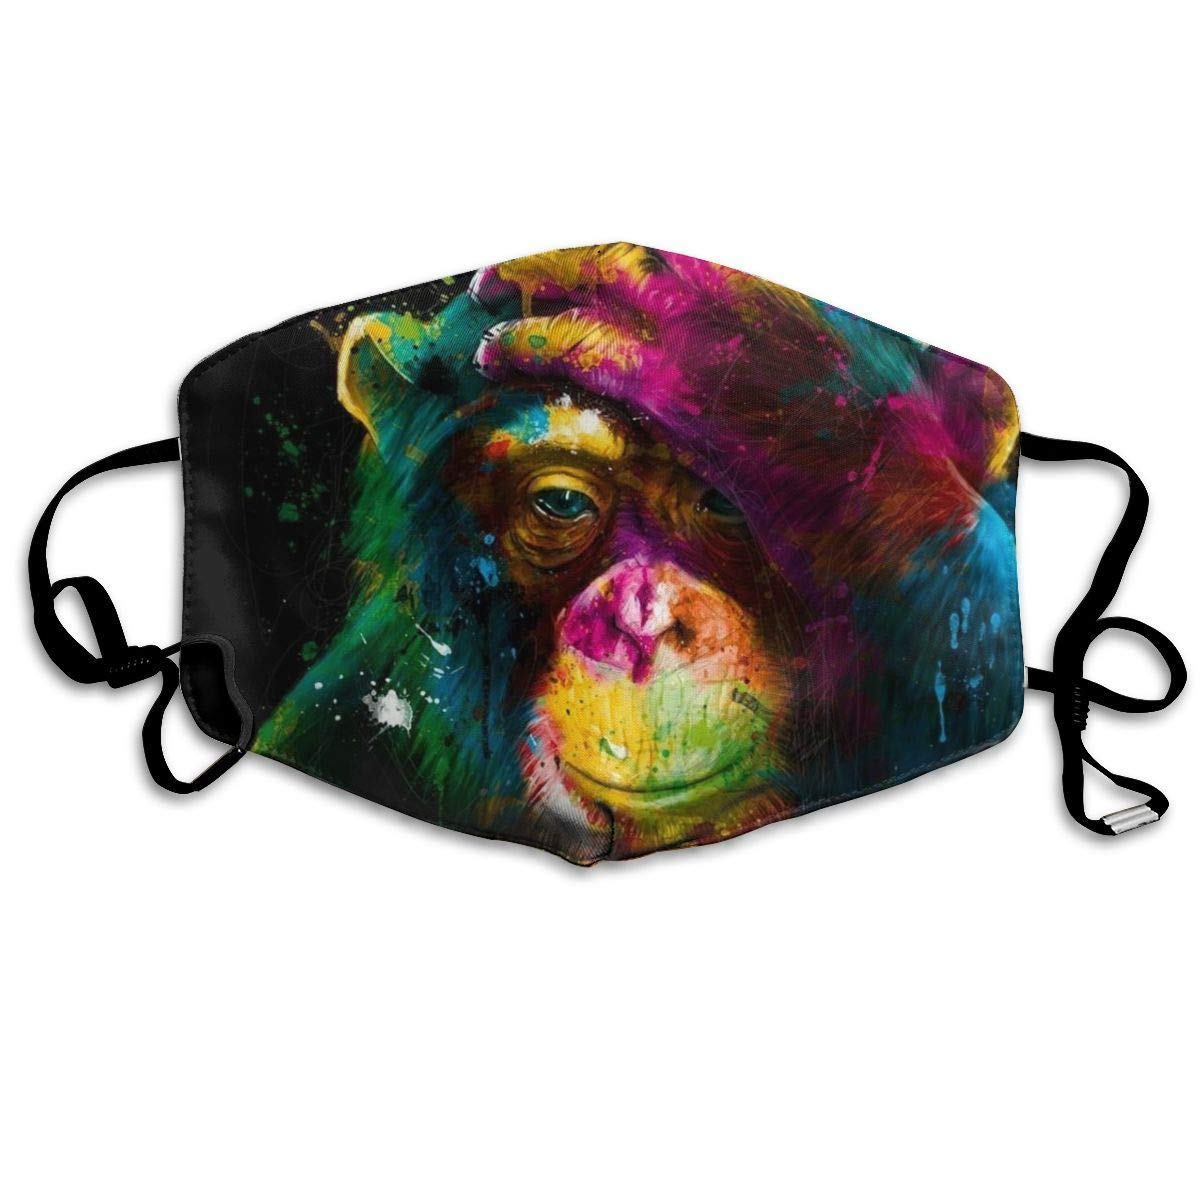 Mouth Mask for Daily Dress Up, Doodle Monkey Anti-dust Mouth-Muffle, Washable Reusable Holiday Half Face Masks for Mens and